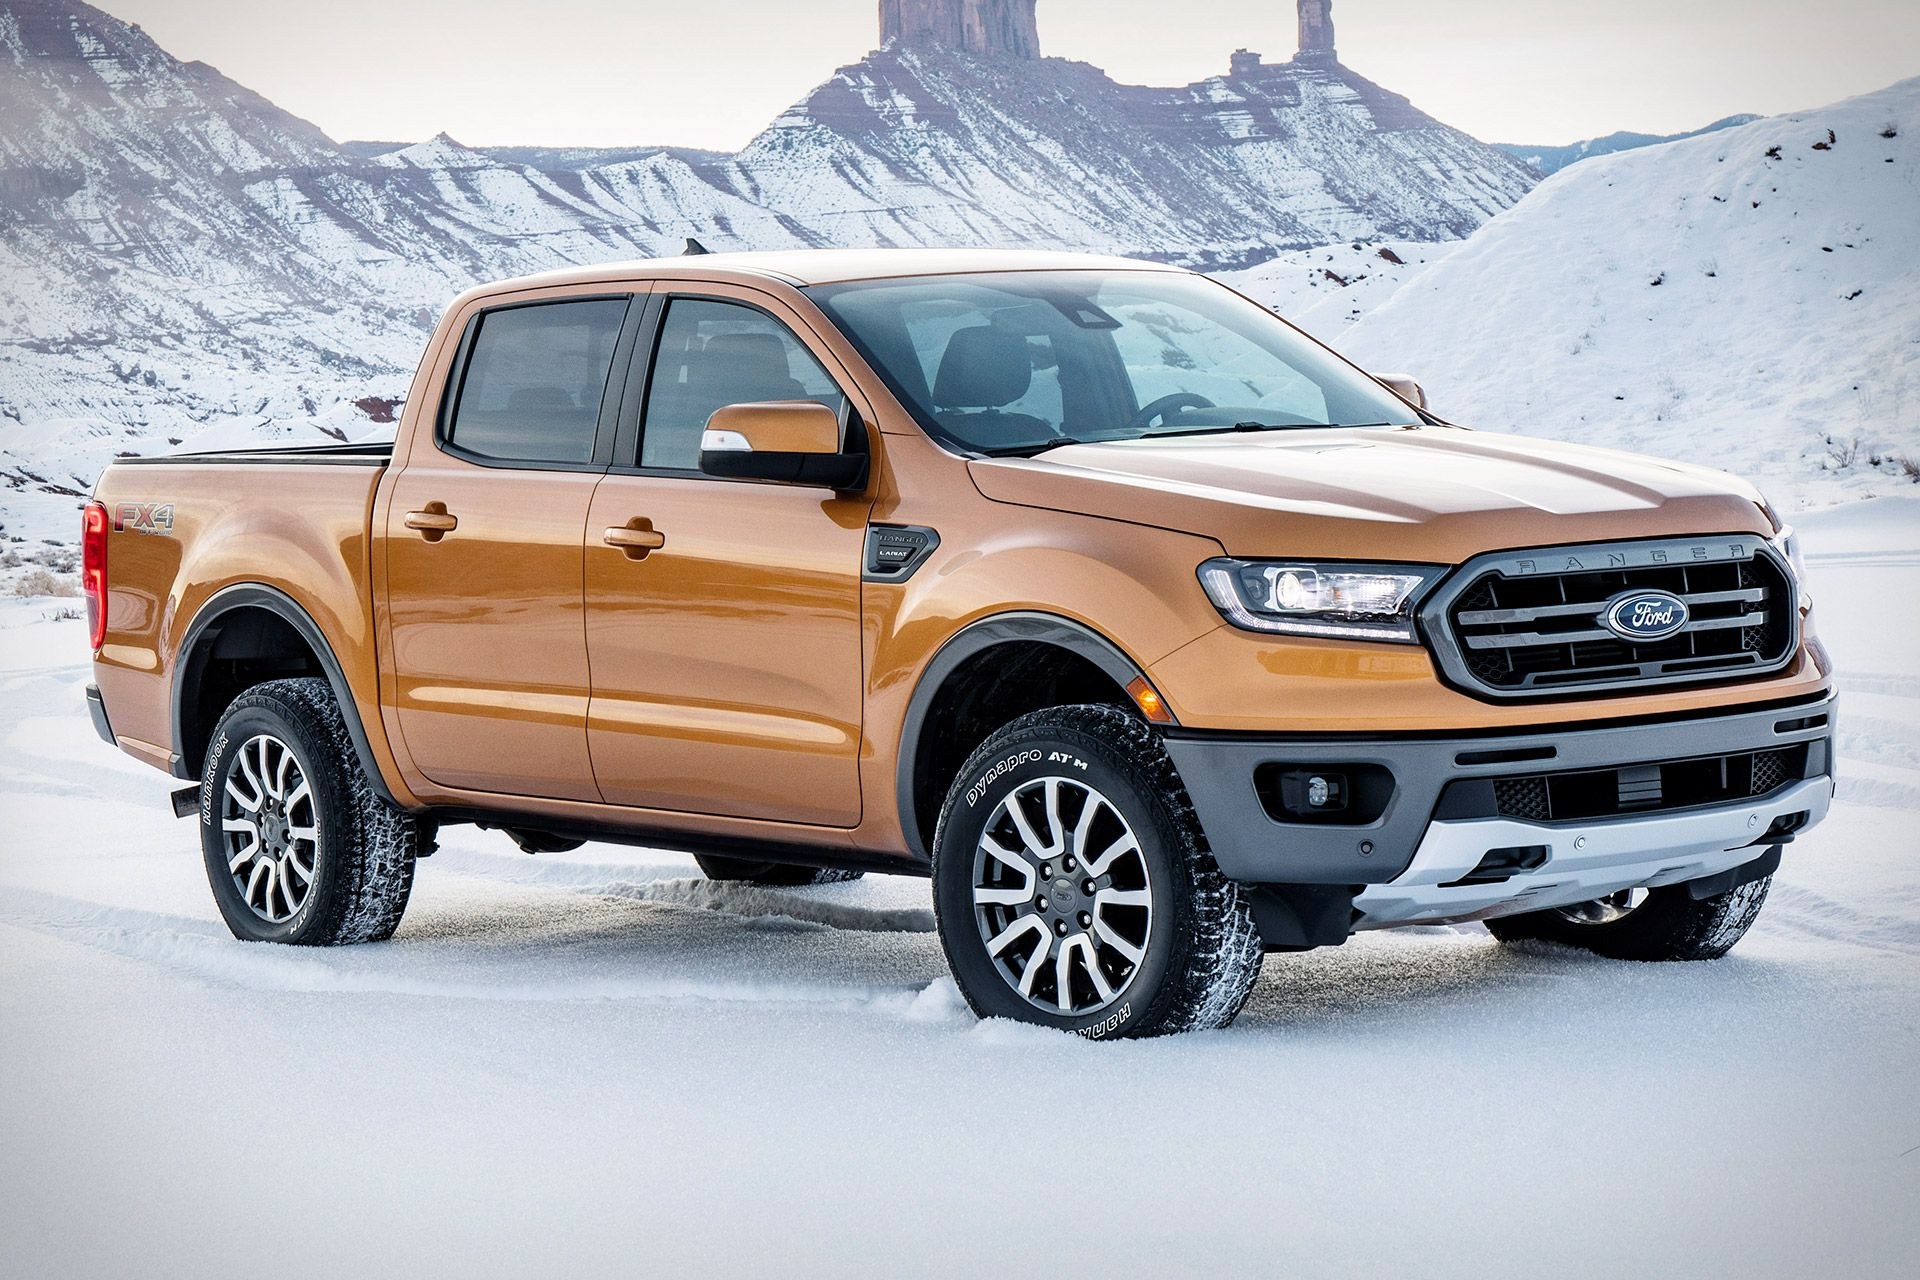 Ford Performance Add On Boosts Ranger Output By 45 Hp In 2020 Ford Ranger 2019 Ford Ranger Ford Ranger Pickup